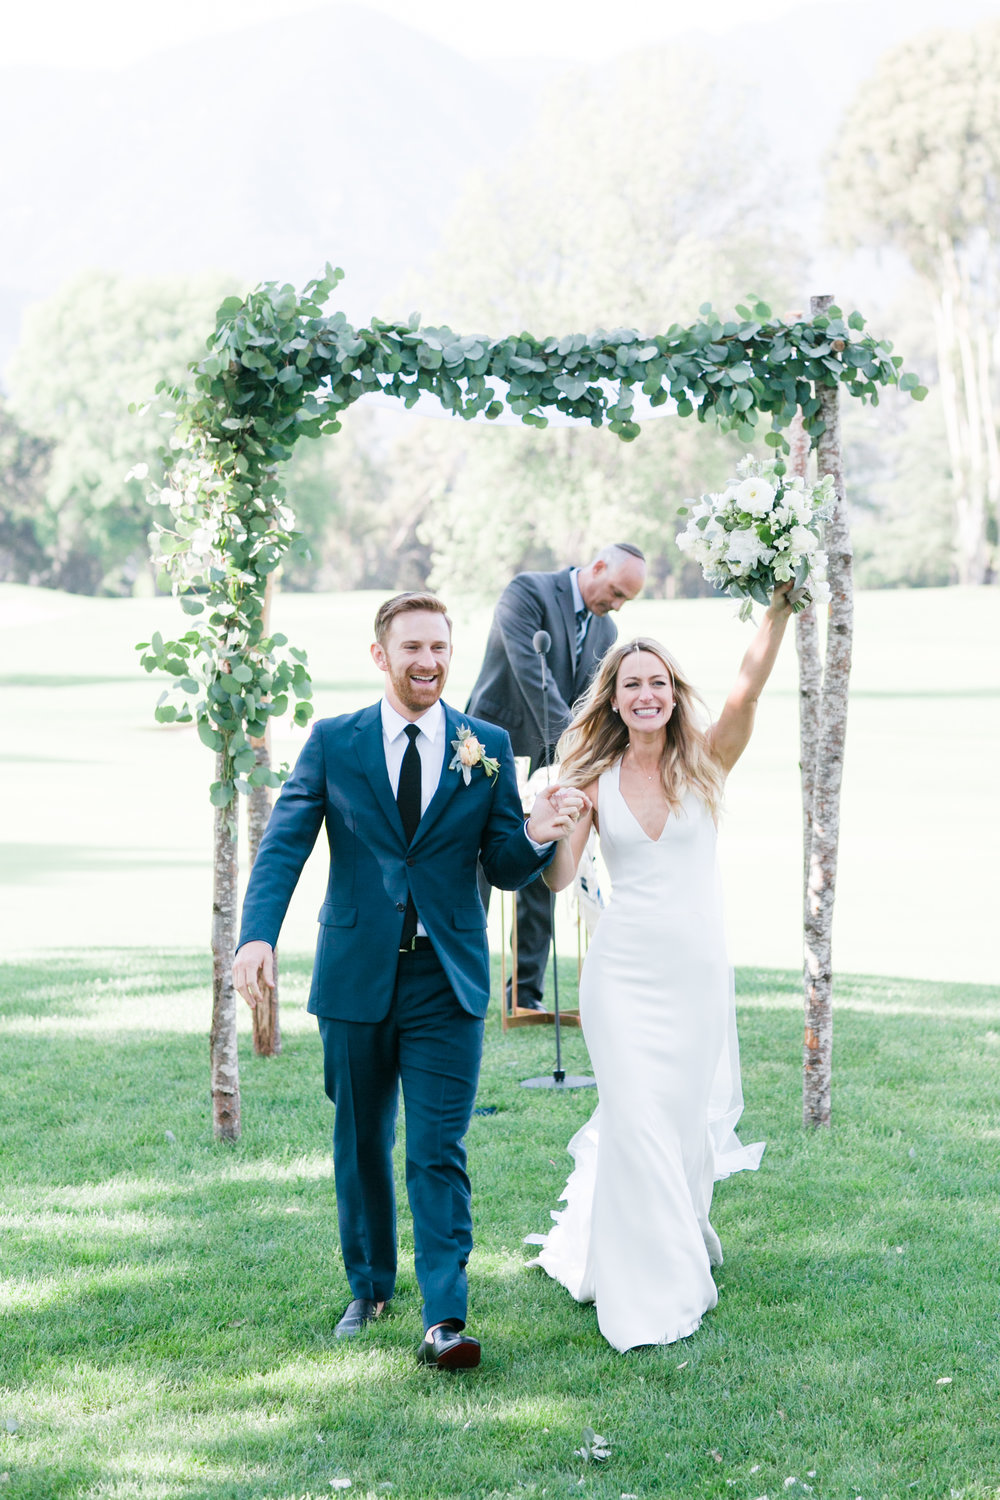 www.santabarbarawedding.com | Michelle Beller Photography | Ojai Valley Inn | Ceremony | Bride and Groom